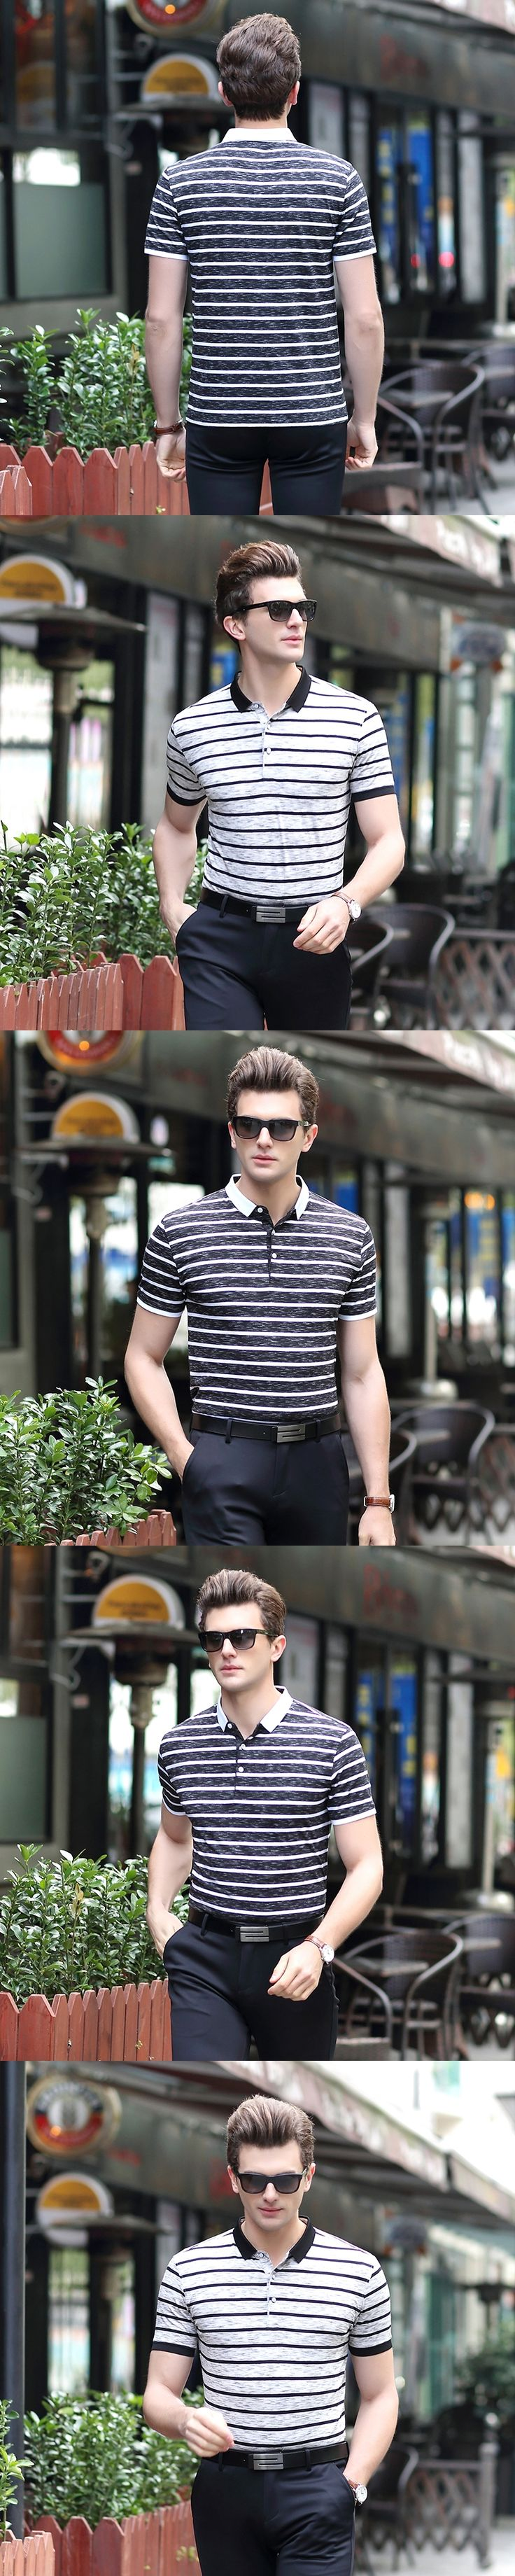 2017 Summer New Men's Striped Polo Shirt Fashion Business Casual Large Size Male Brand Short Sleeve POLO Shirt